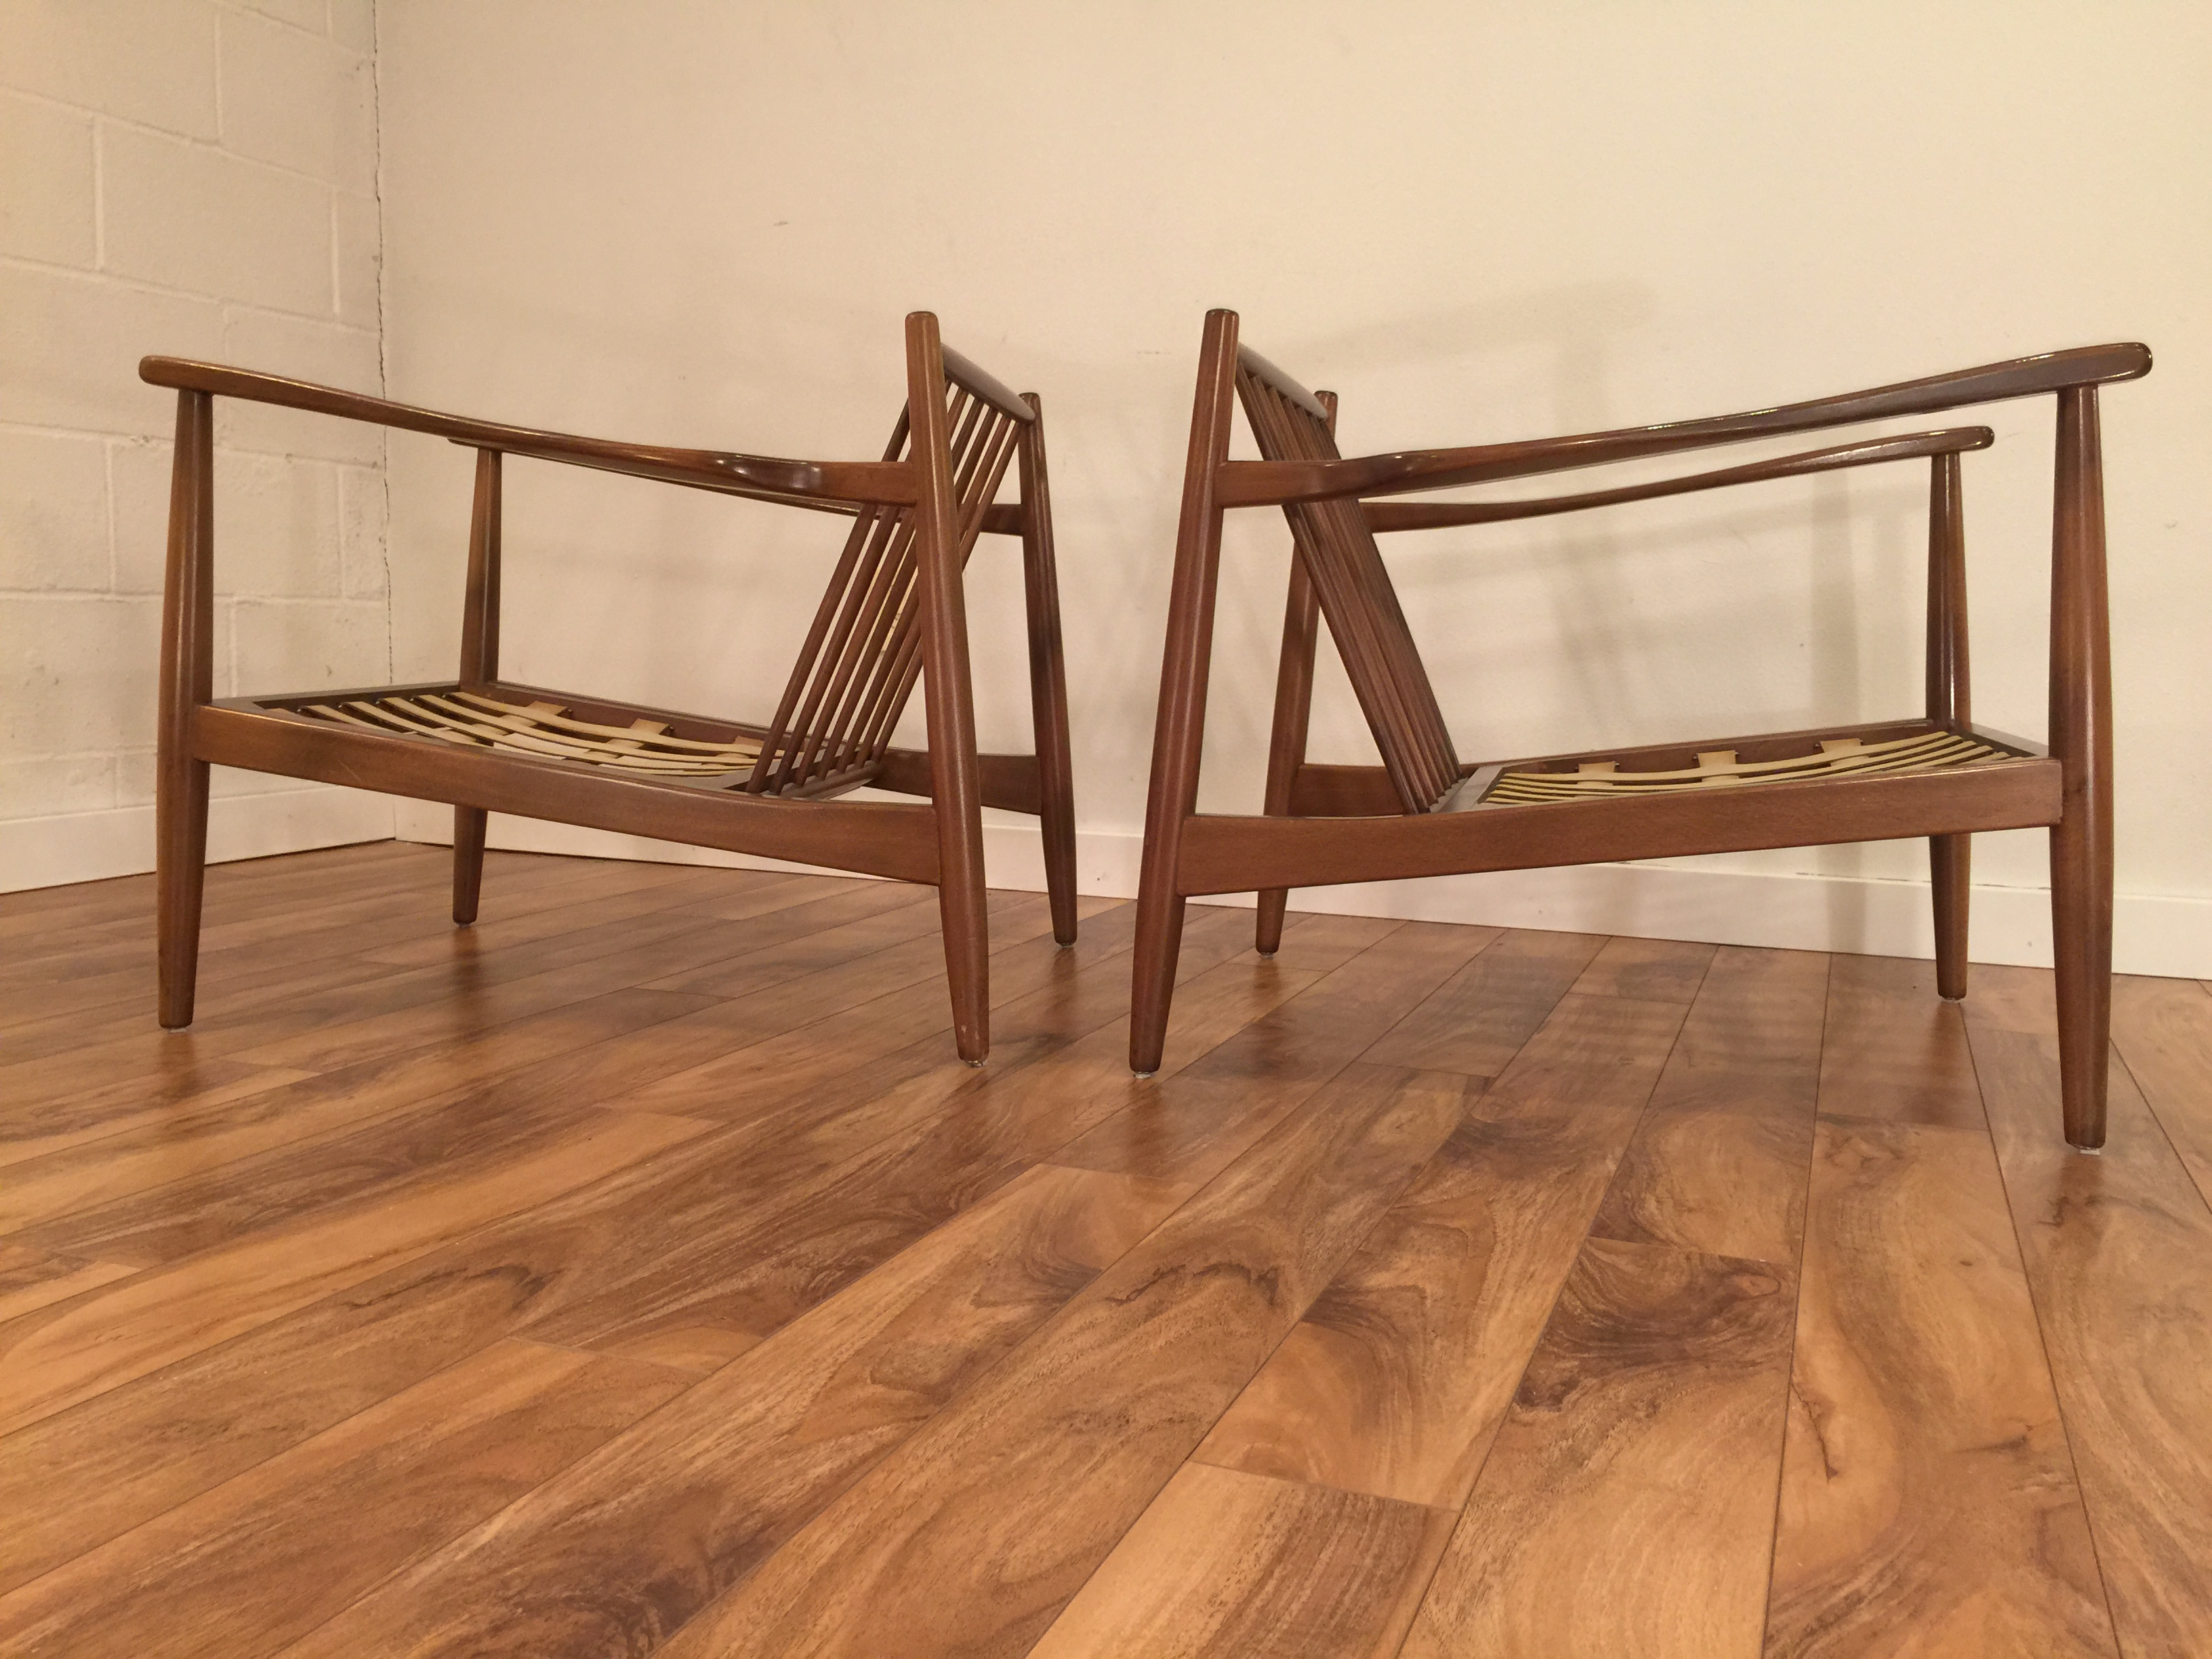 sold danish modern lounge chairs a pair modern to vintage